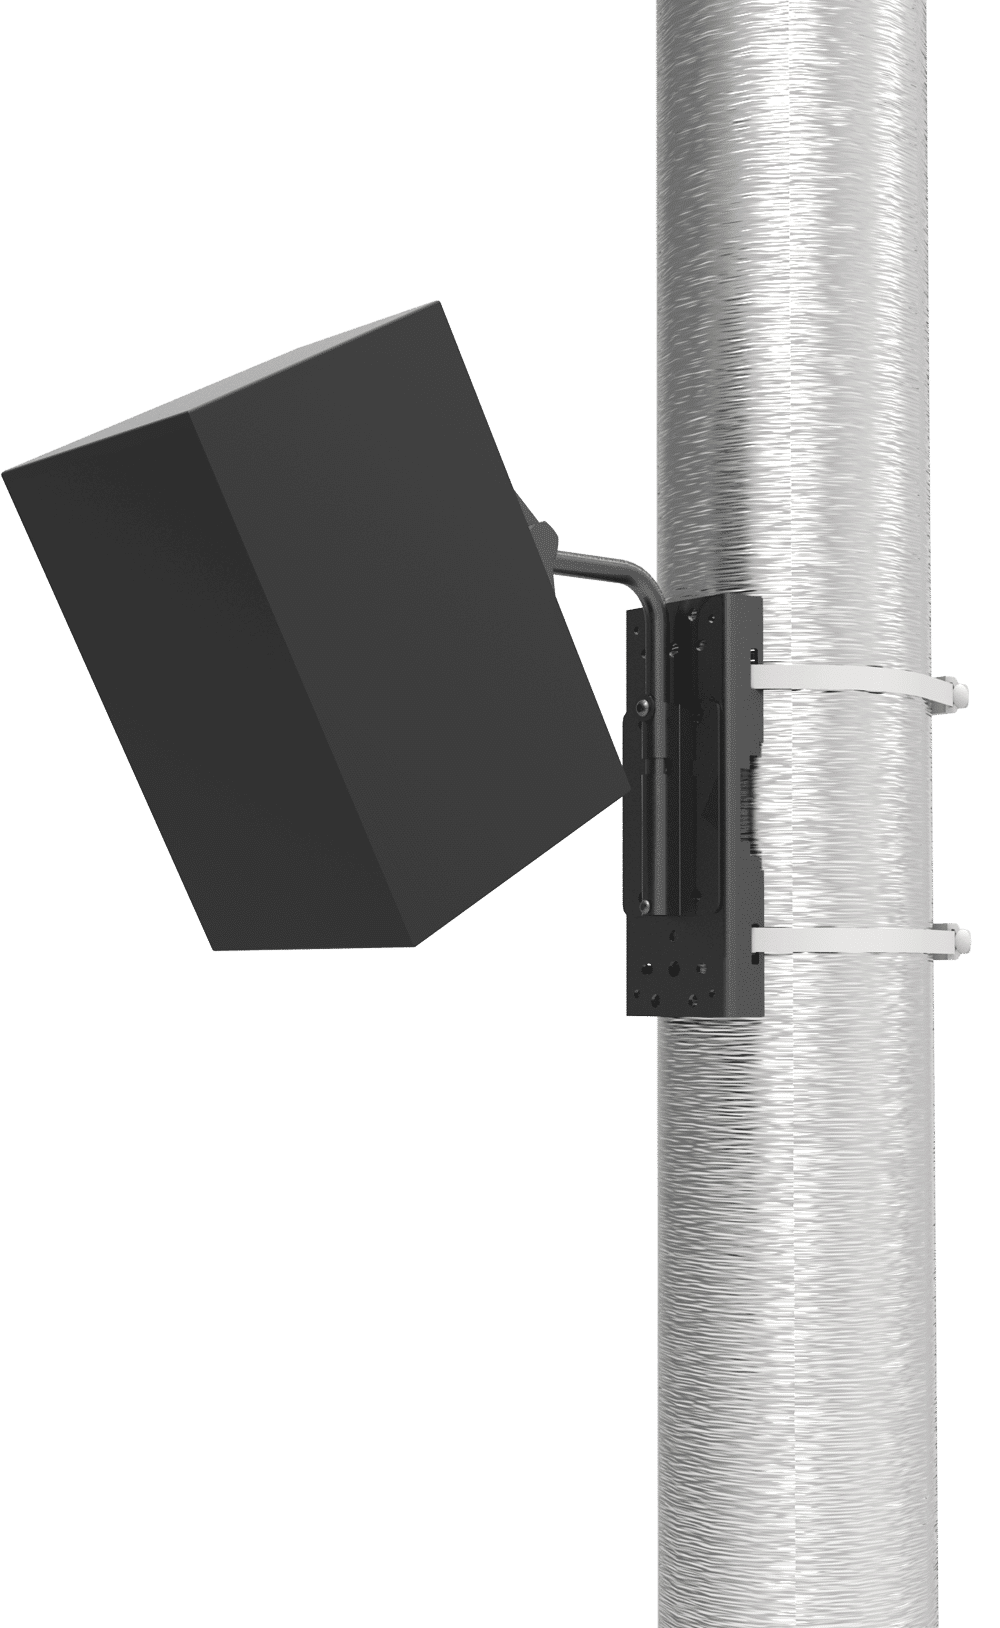 Indoor Audio Pole Mounts Configurations | Adaptive Technologies Group